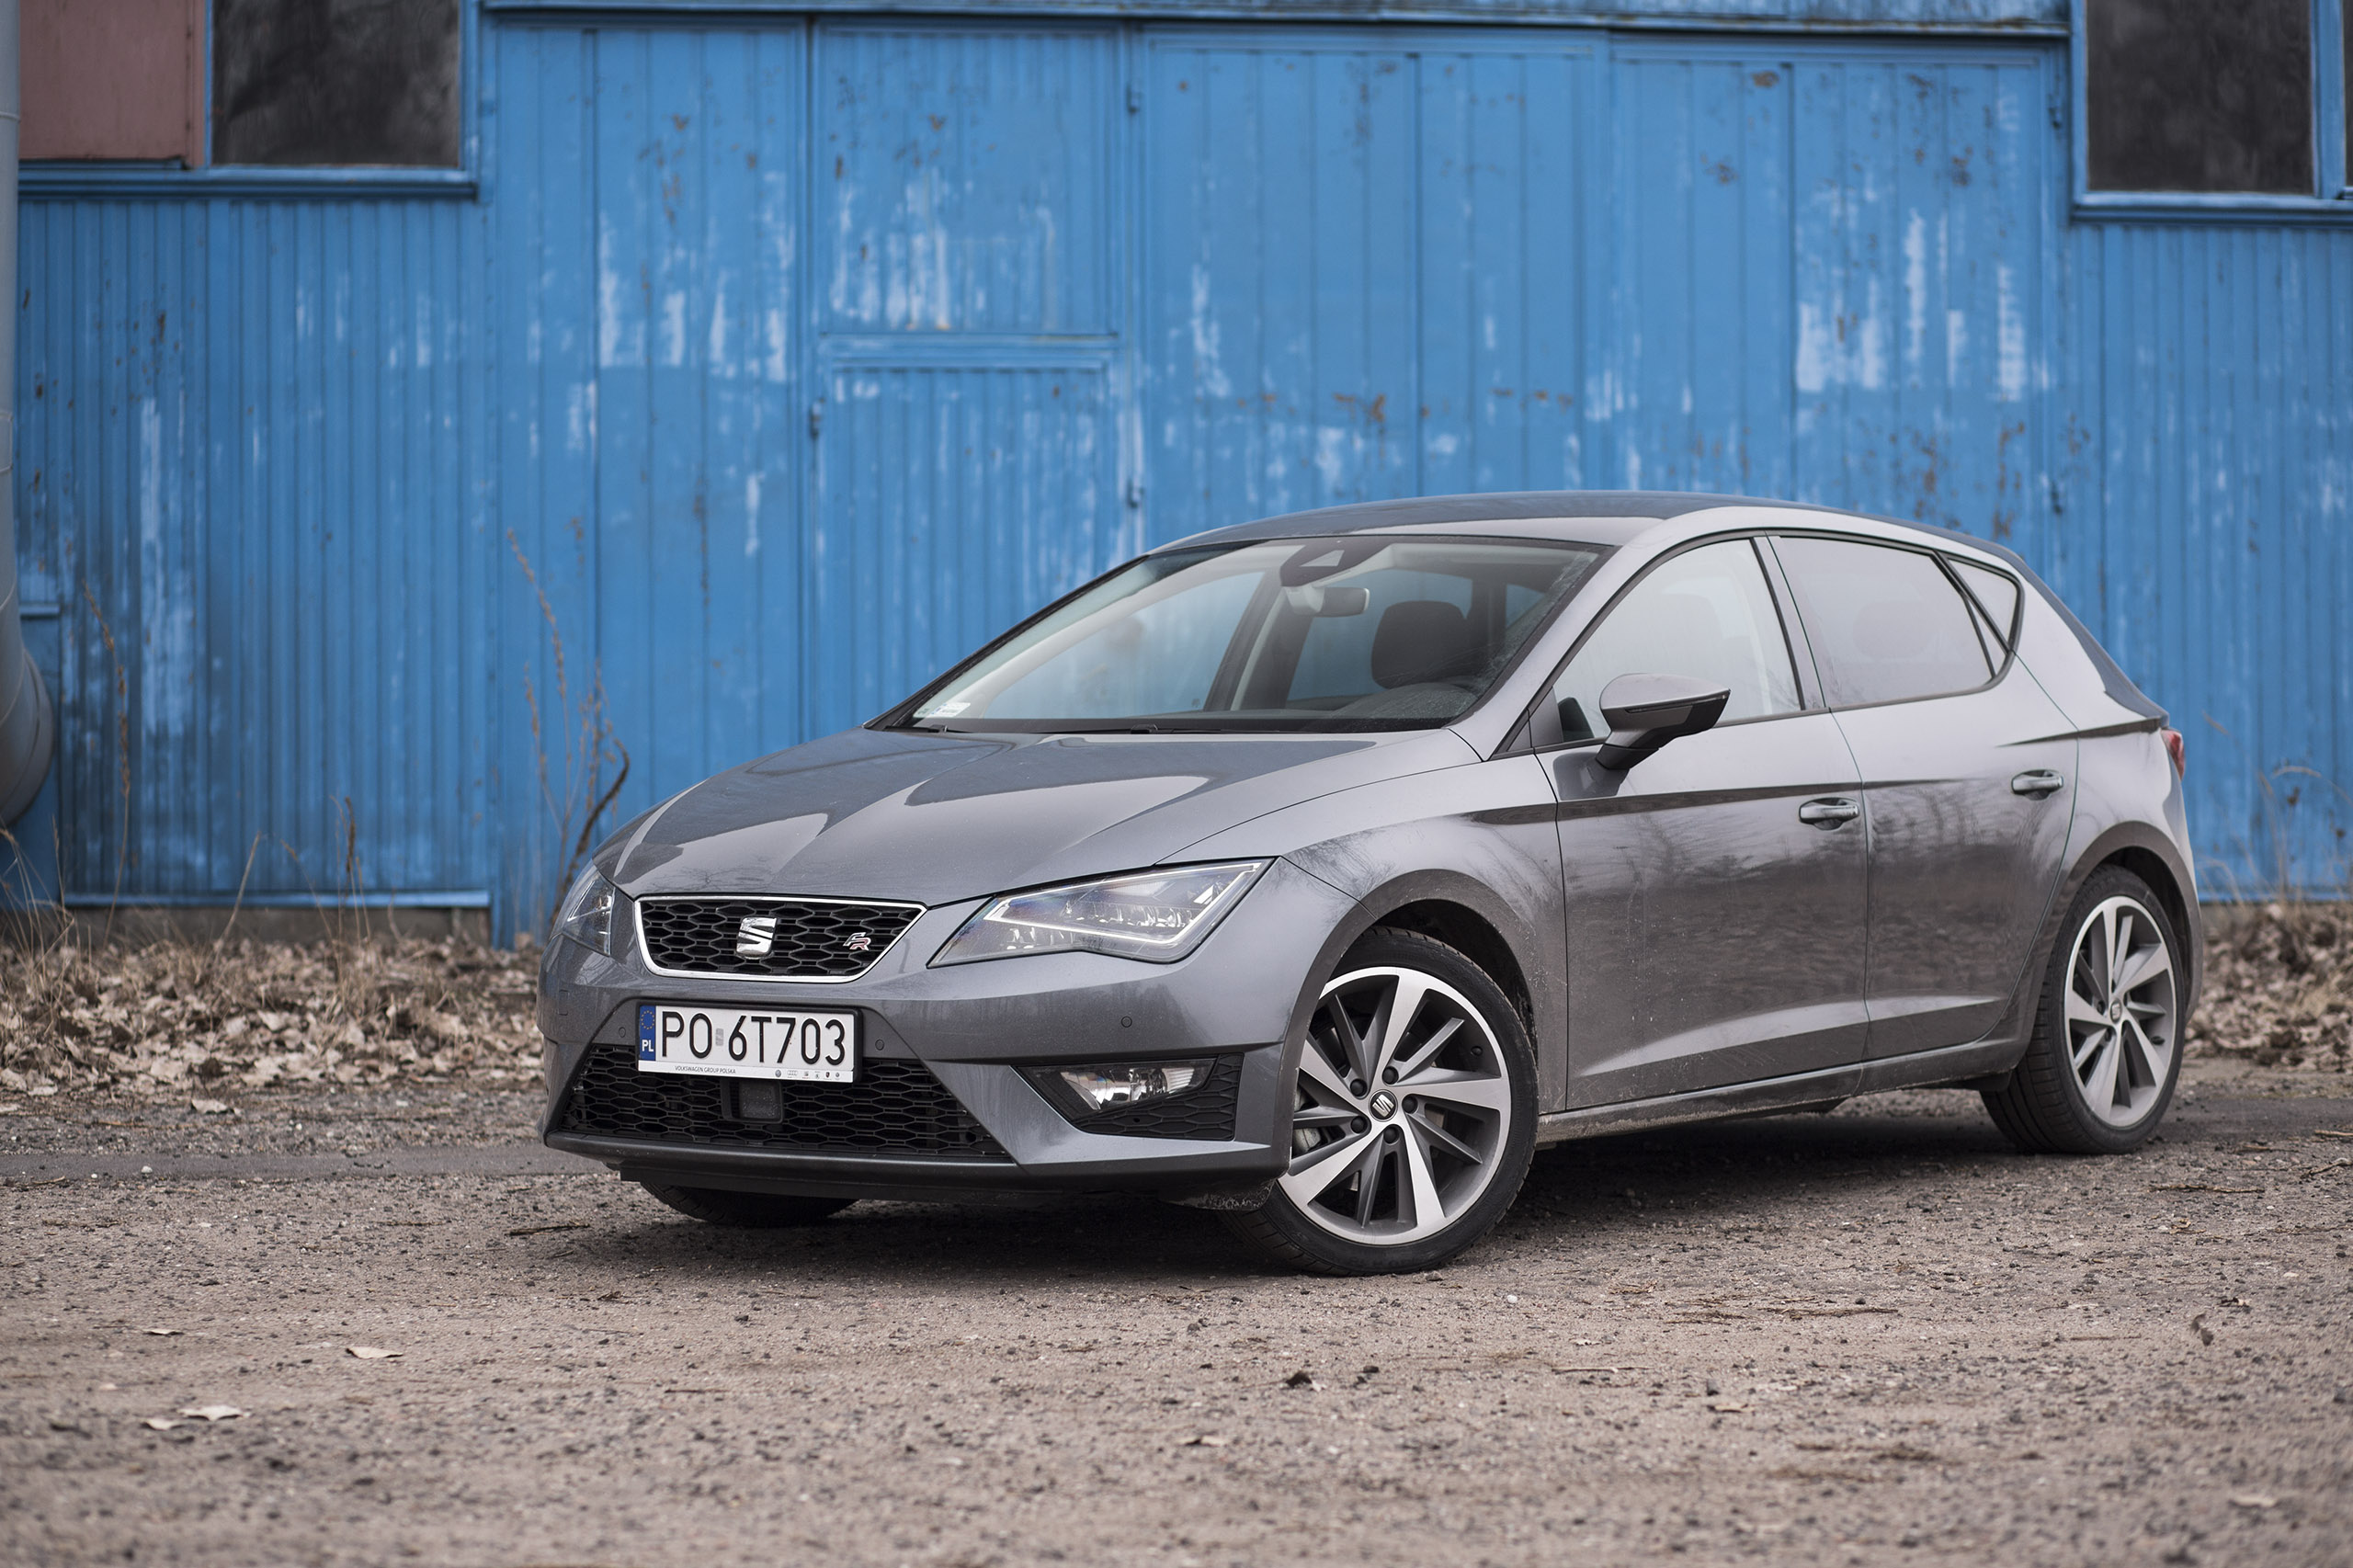 seat leon fr 1 8 tsi 180 km test project automotive. Black Bedroom Furniture Sets. Home Design Ideas